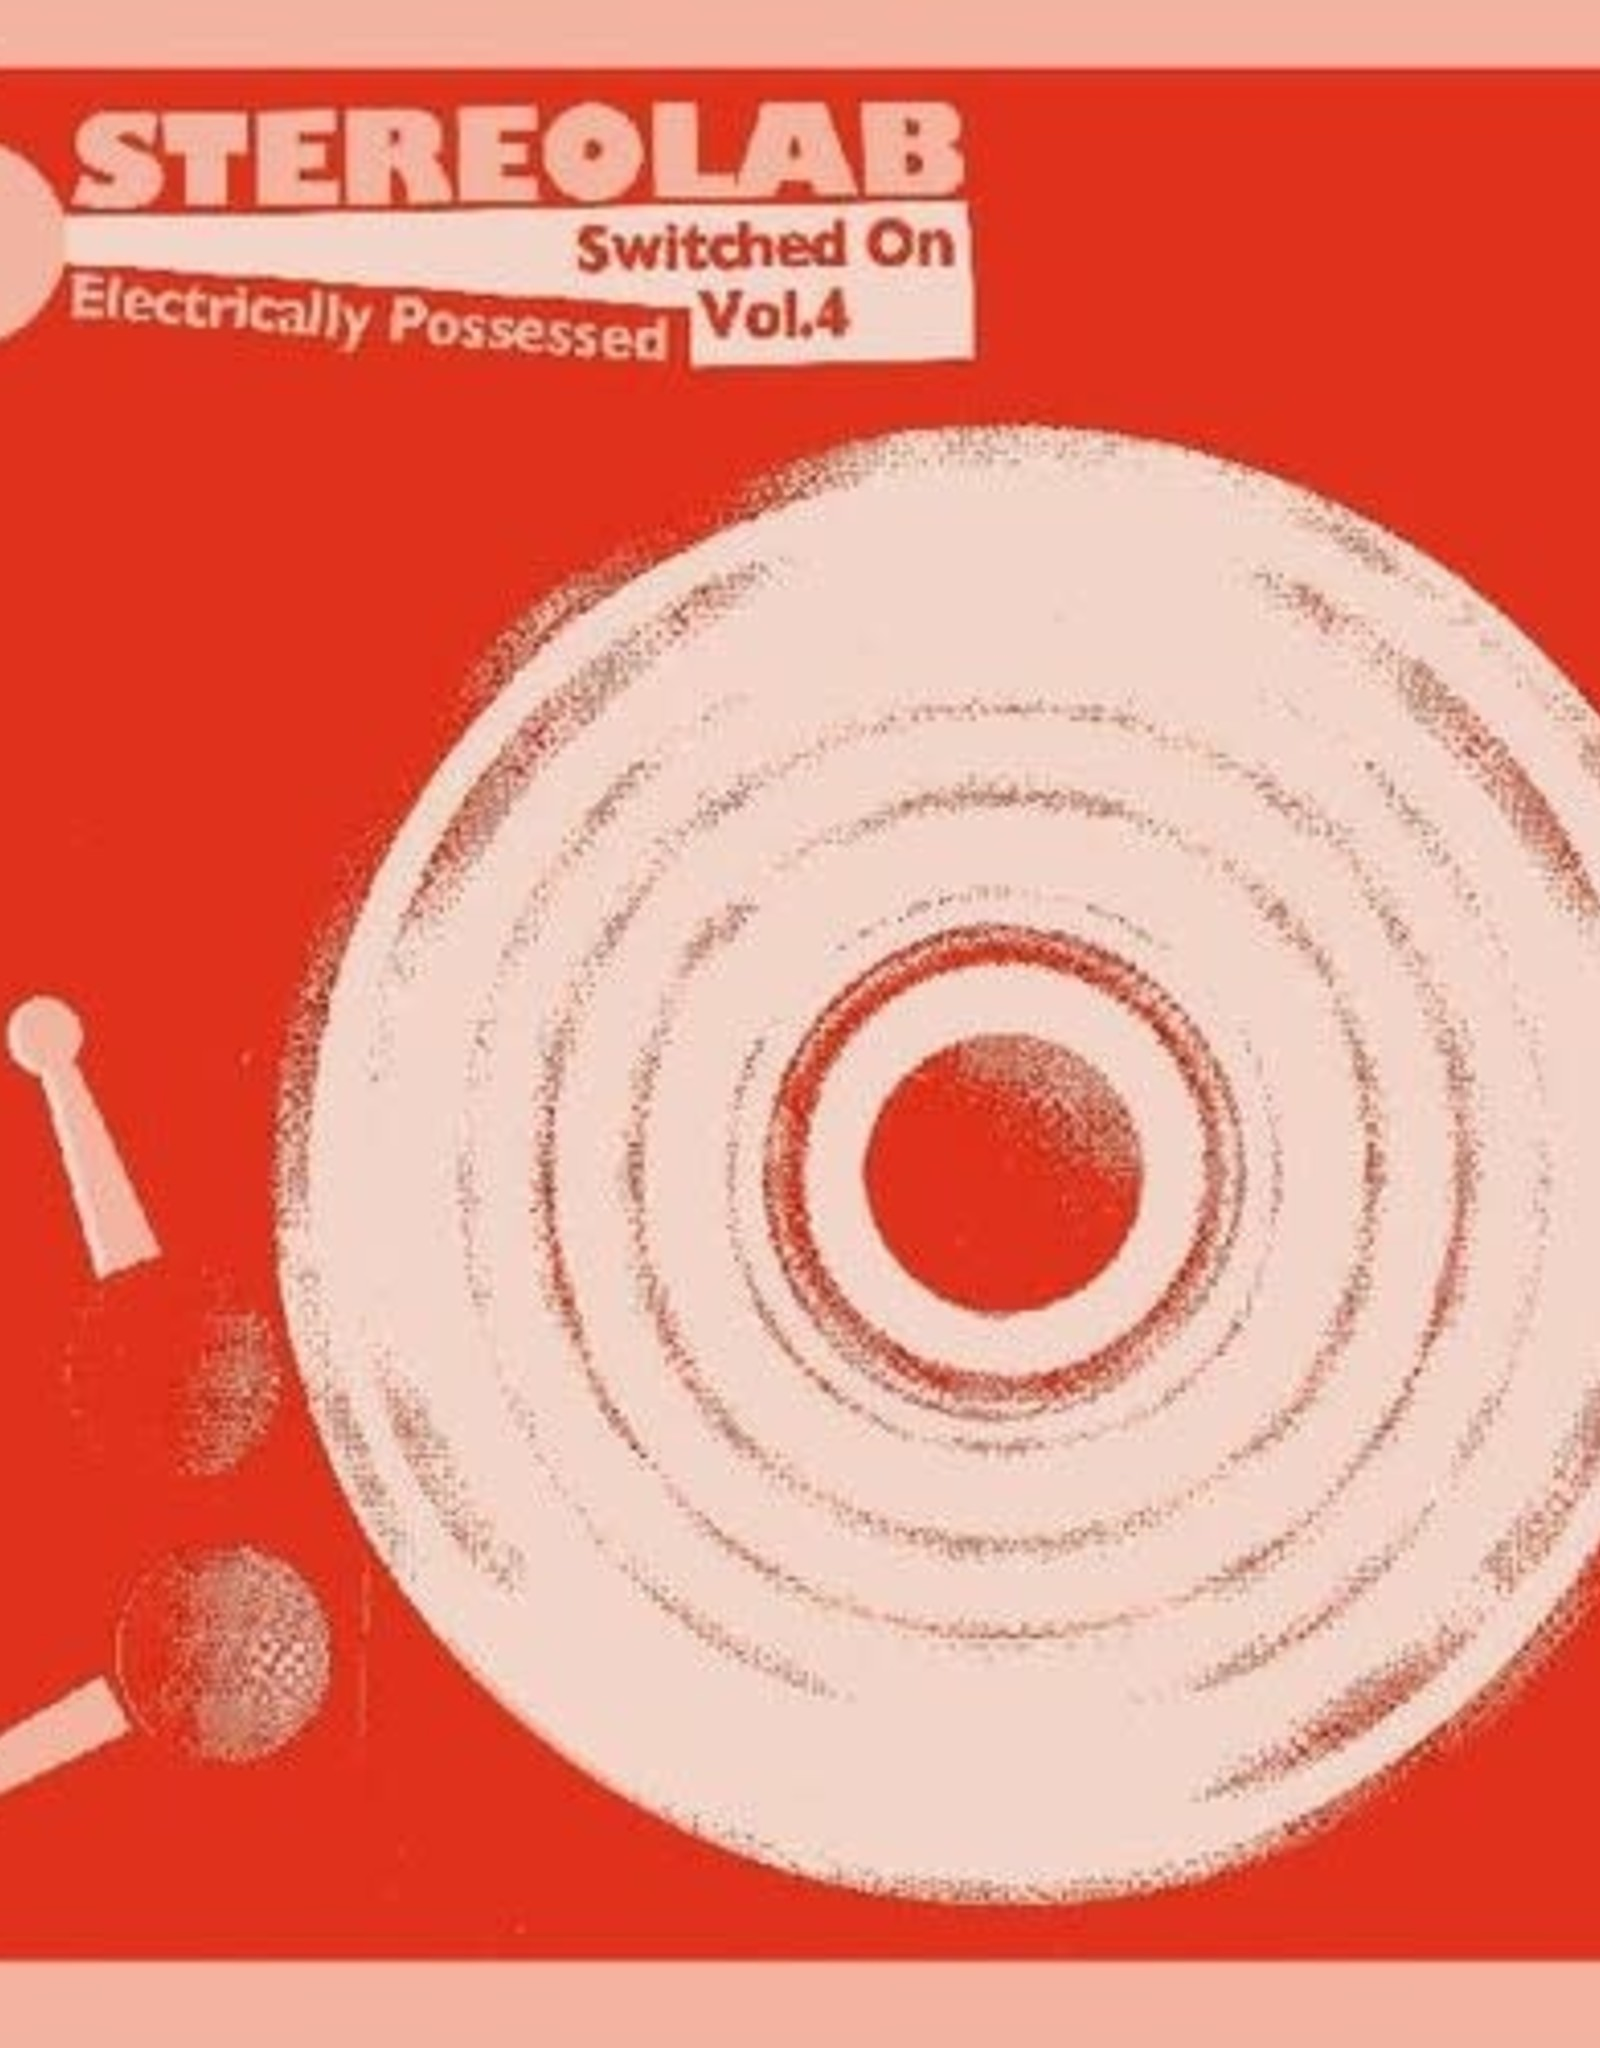 Stereolab - Electrically Possessed (switched On Volume 4)(Limited Mirrorboard Sleeve)